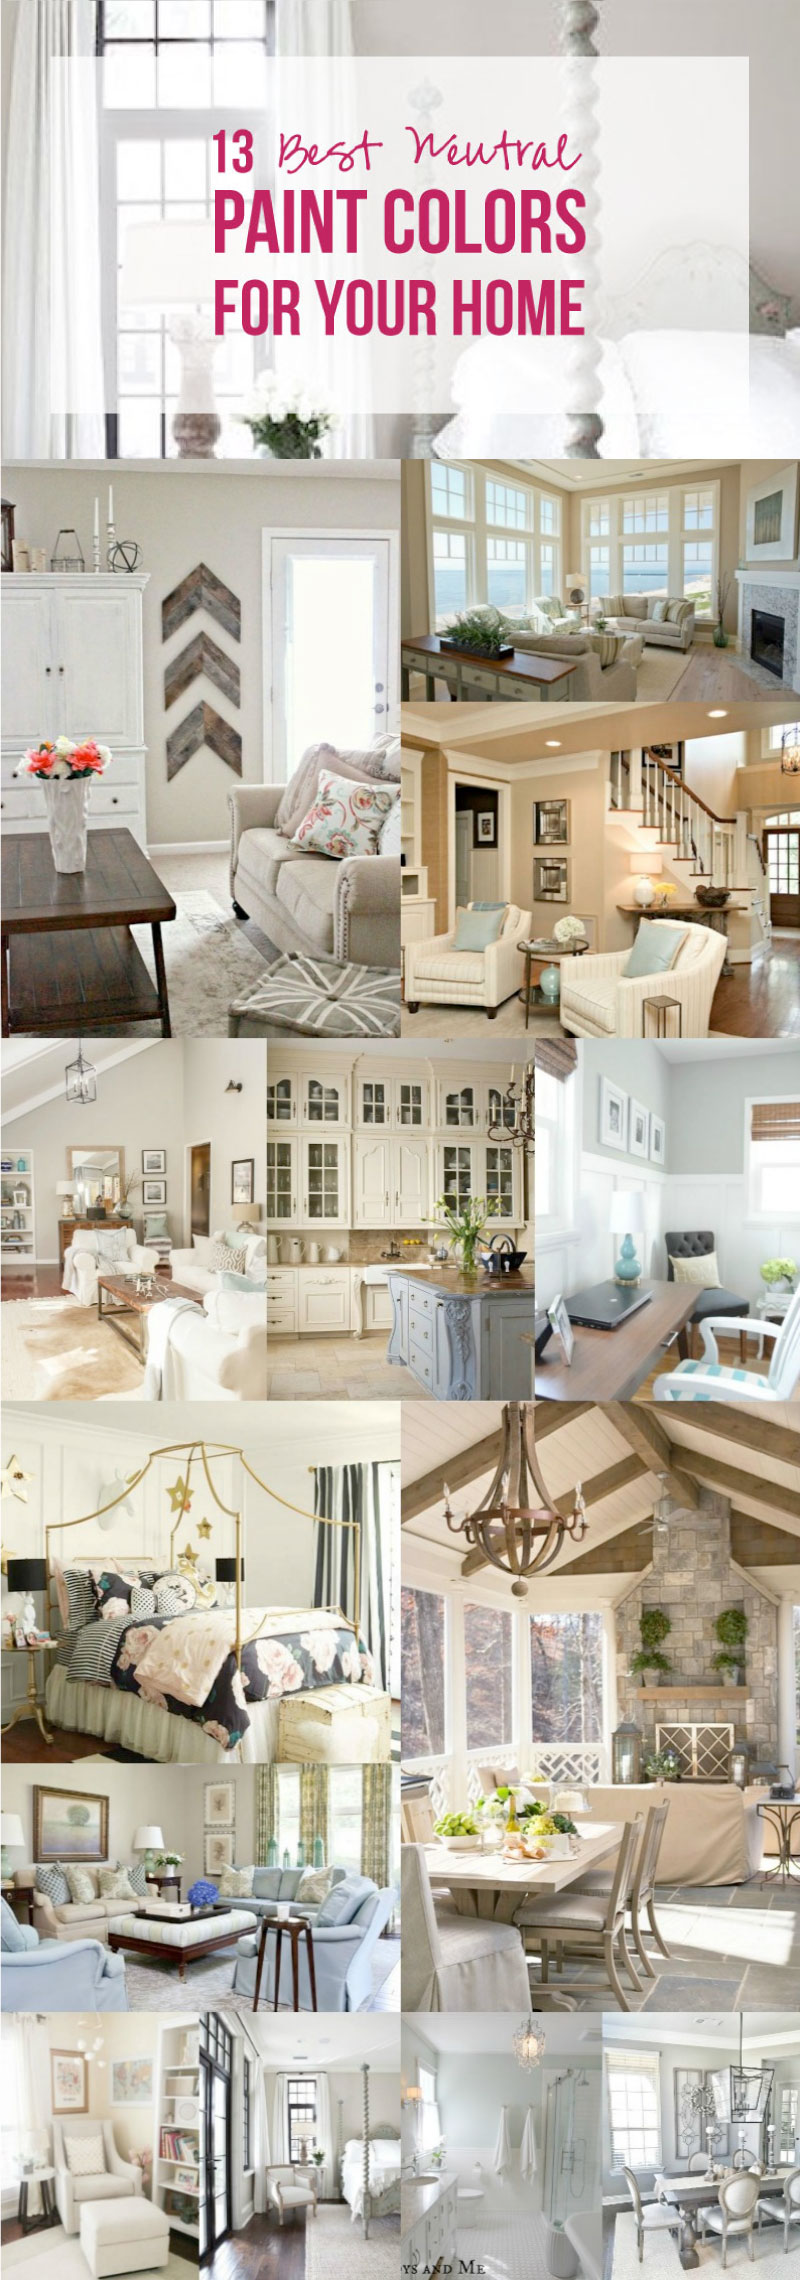 13 Best Neutral Paint Colors For Your Home